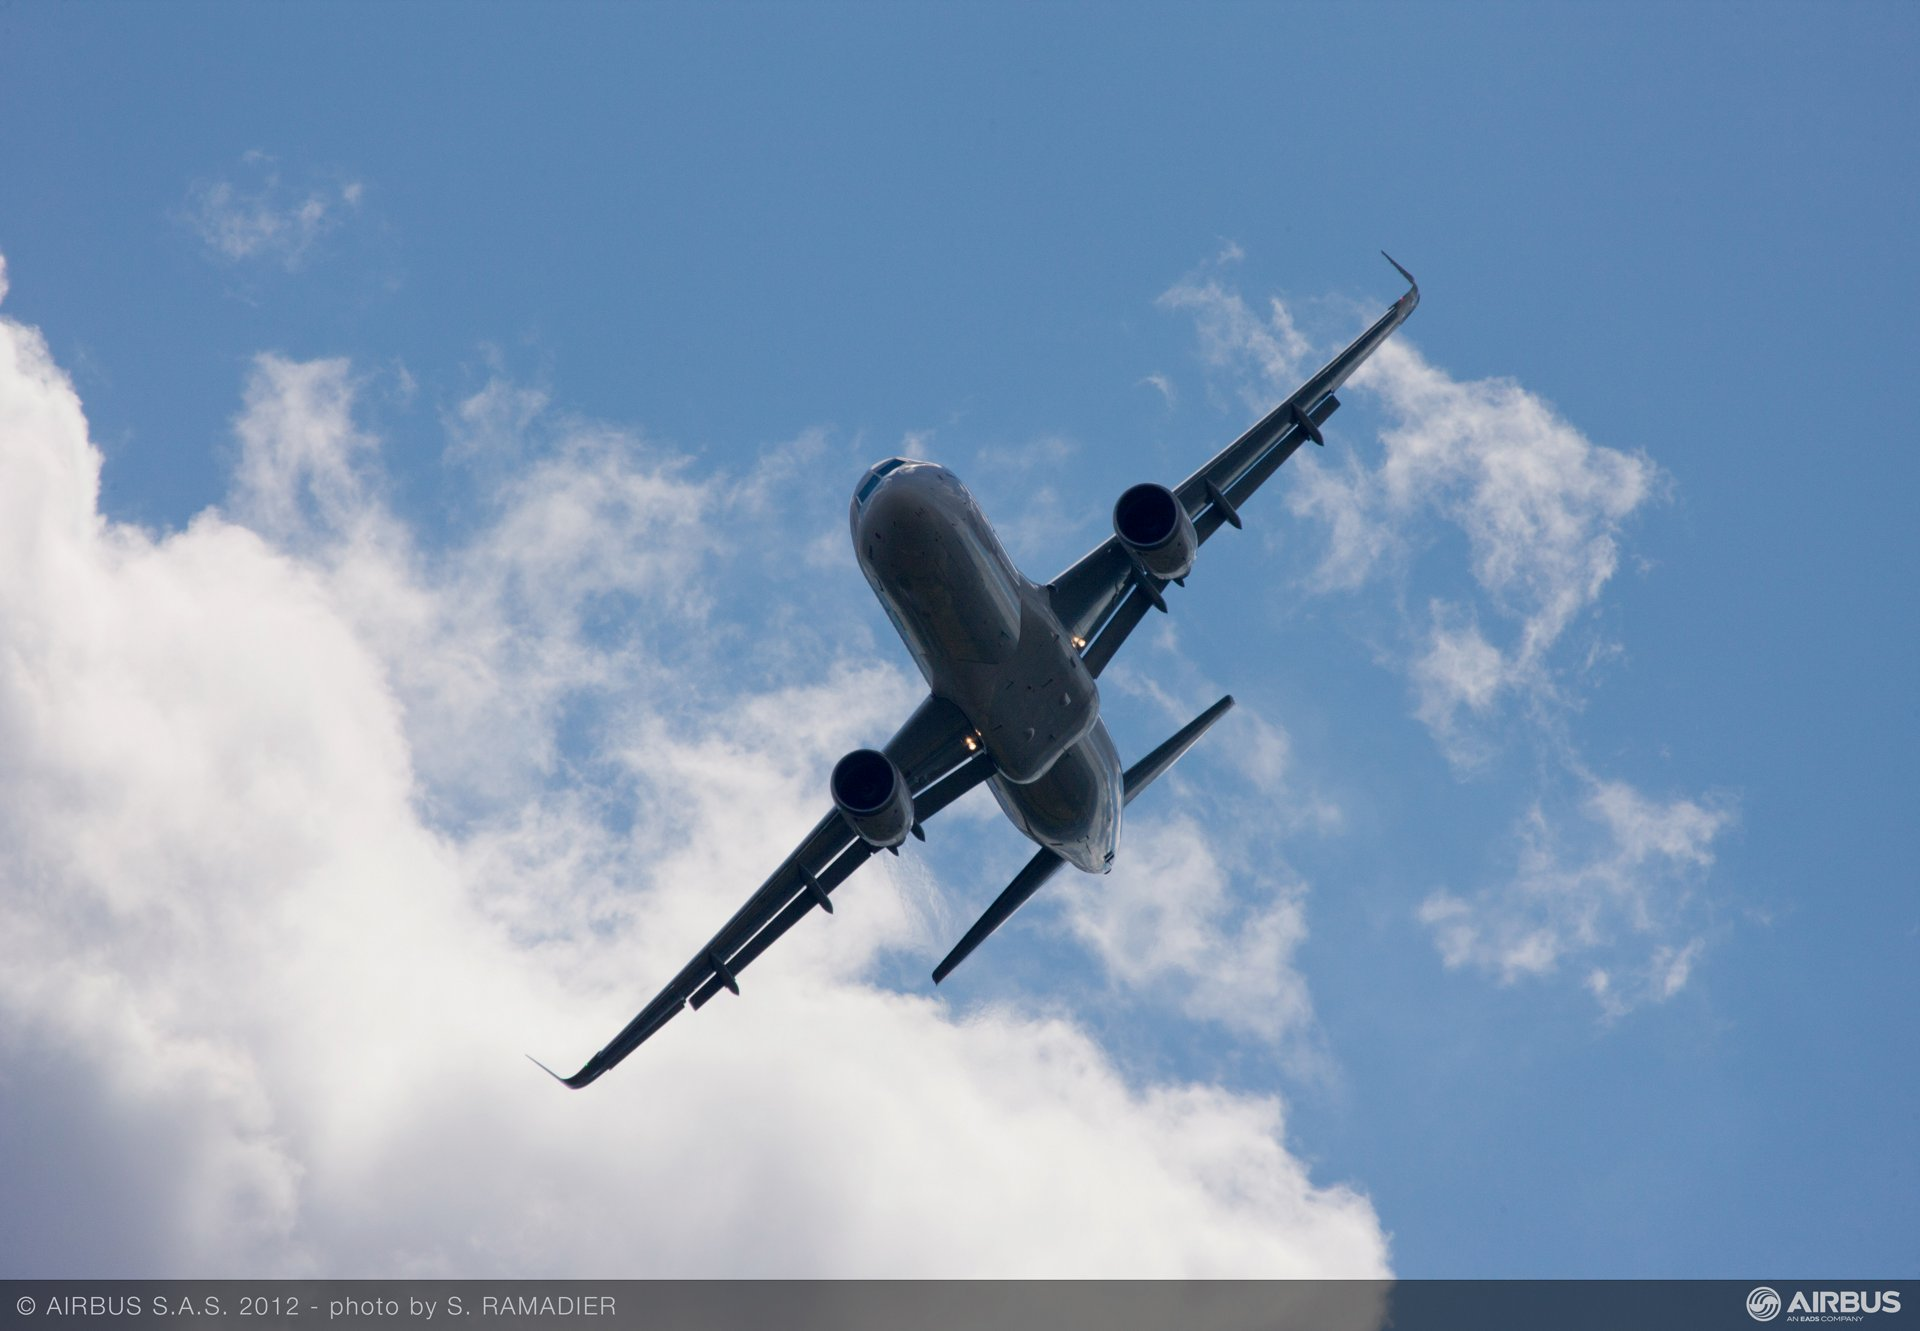 """Airbus demonstrated a strong presence at the 2012 edition of ILA Berlin Airshow. """"The fuel-saving wingtip devices represent the next phase in our ongoing development of the best-selling A320 Family,"""" said John Leahy, Airbus COO."""